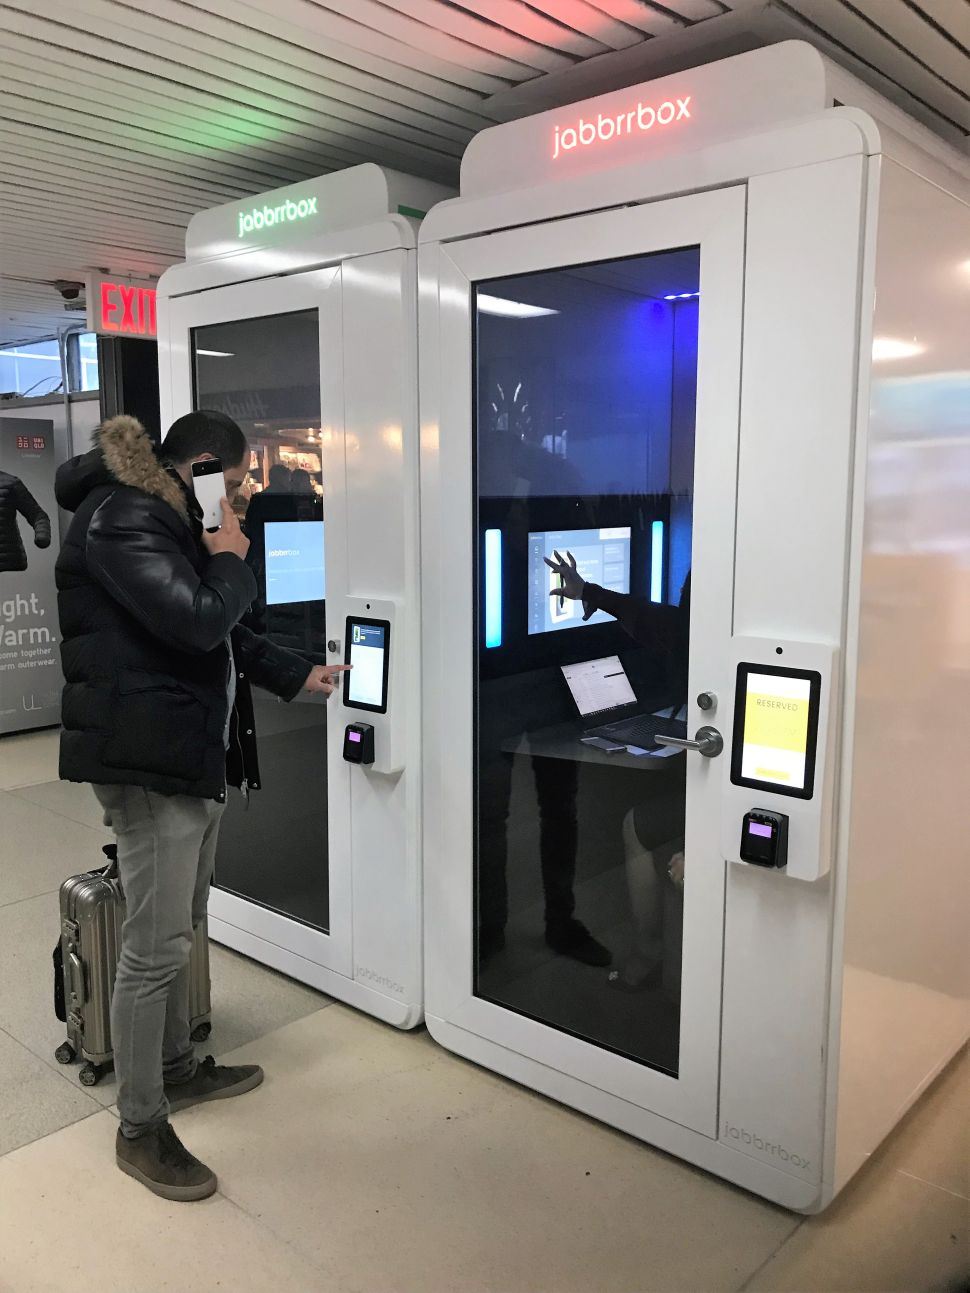 Why the 'Zipcar for Travel' Installed 8 Office Pods in LaGuardia Airport